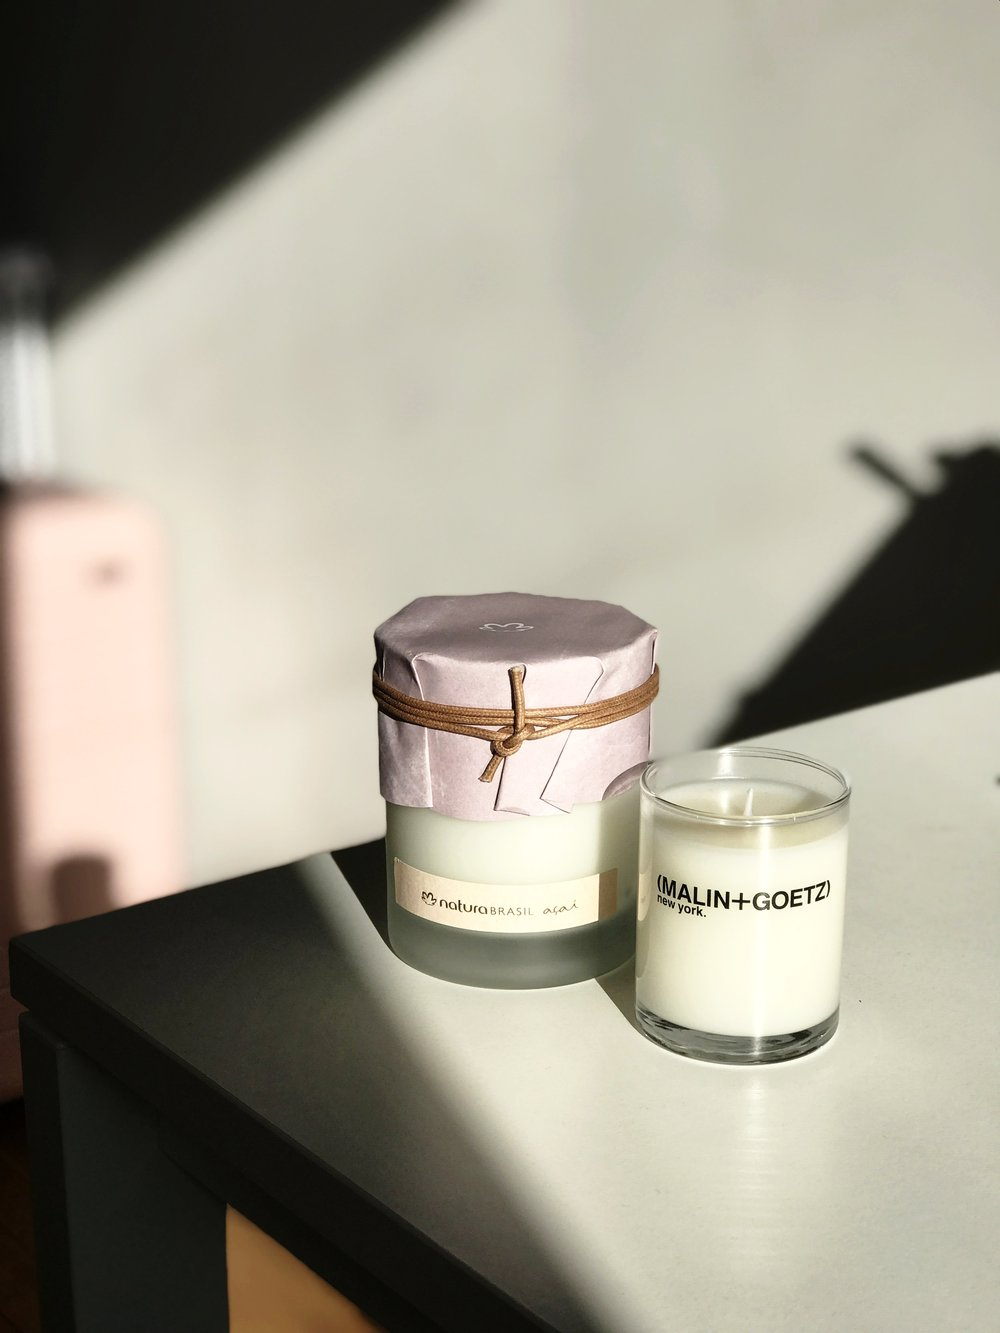 Candles from Natura Brasil and Malin+Goetz.